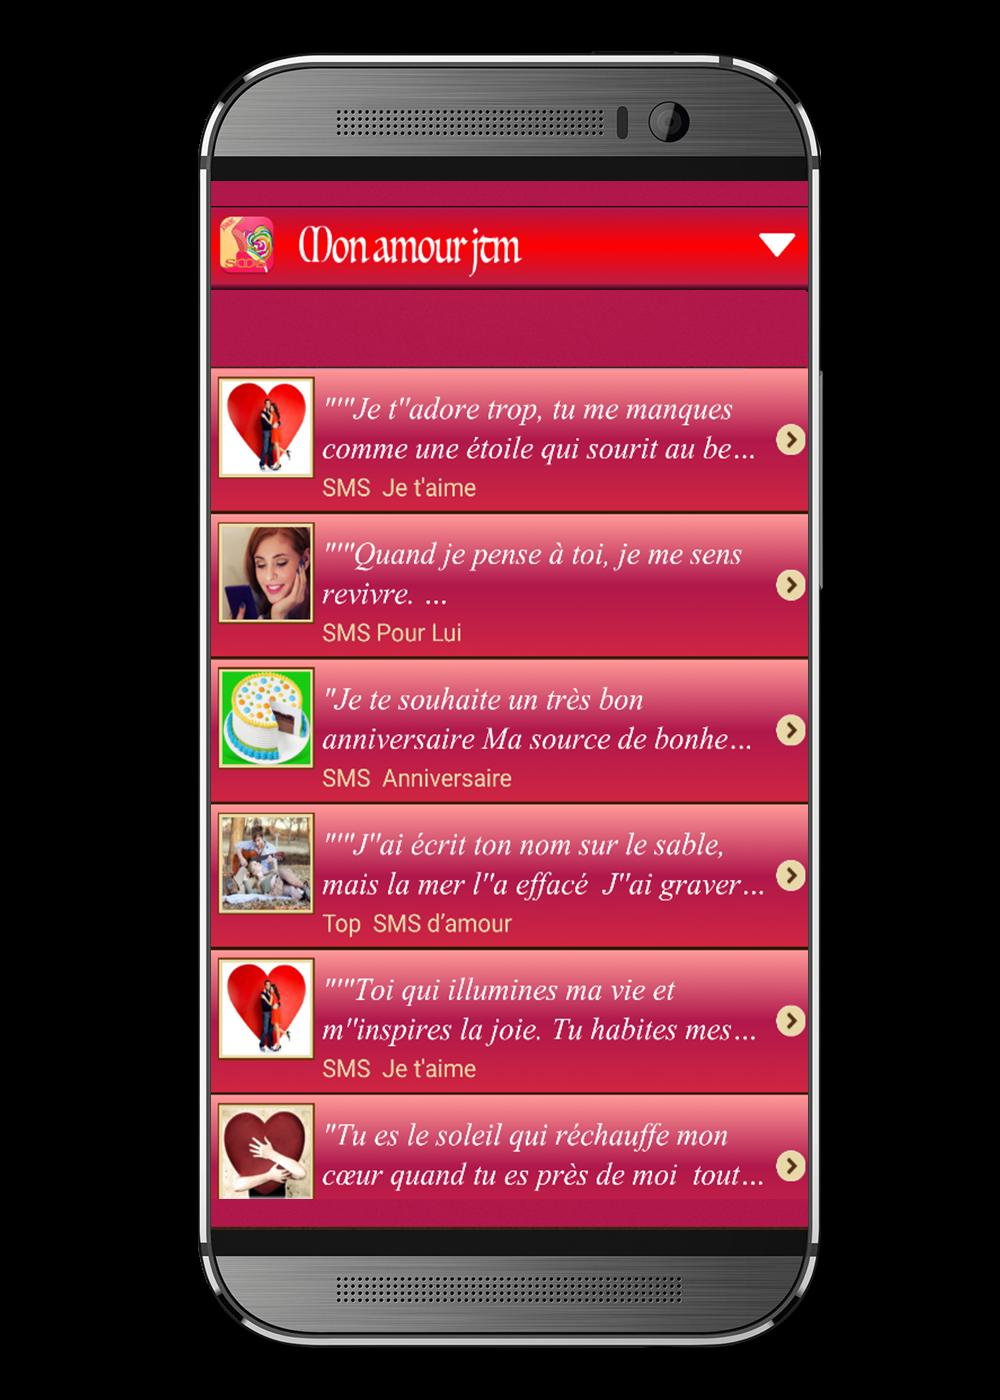 Sms Damour Damitié Et Fête For Android Apk Download